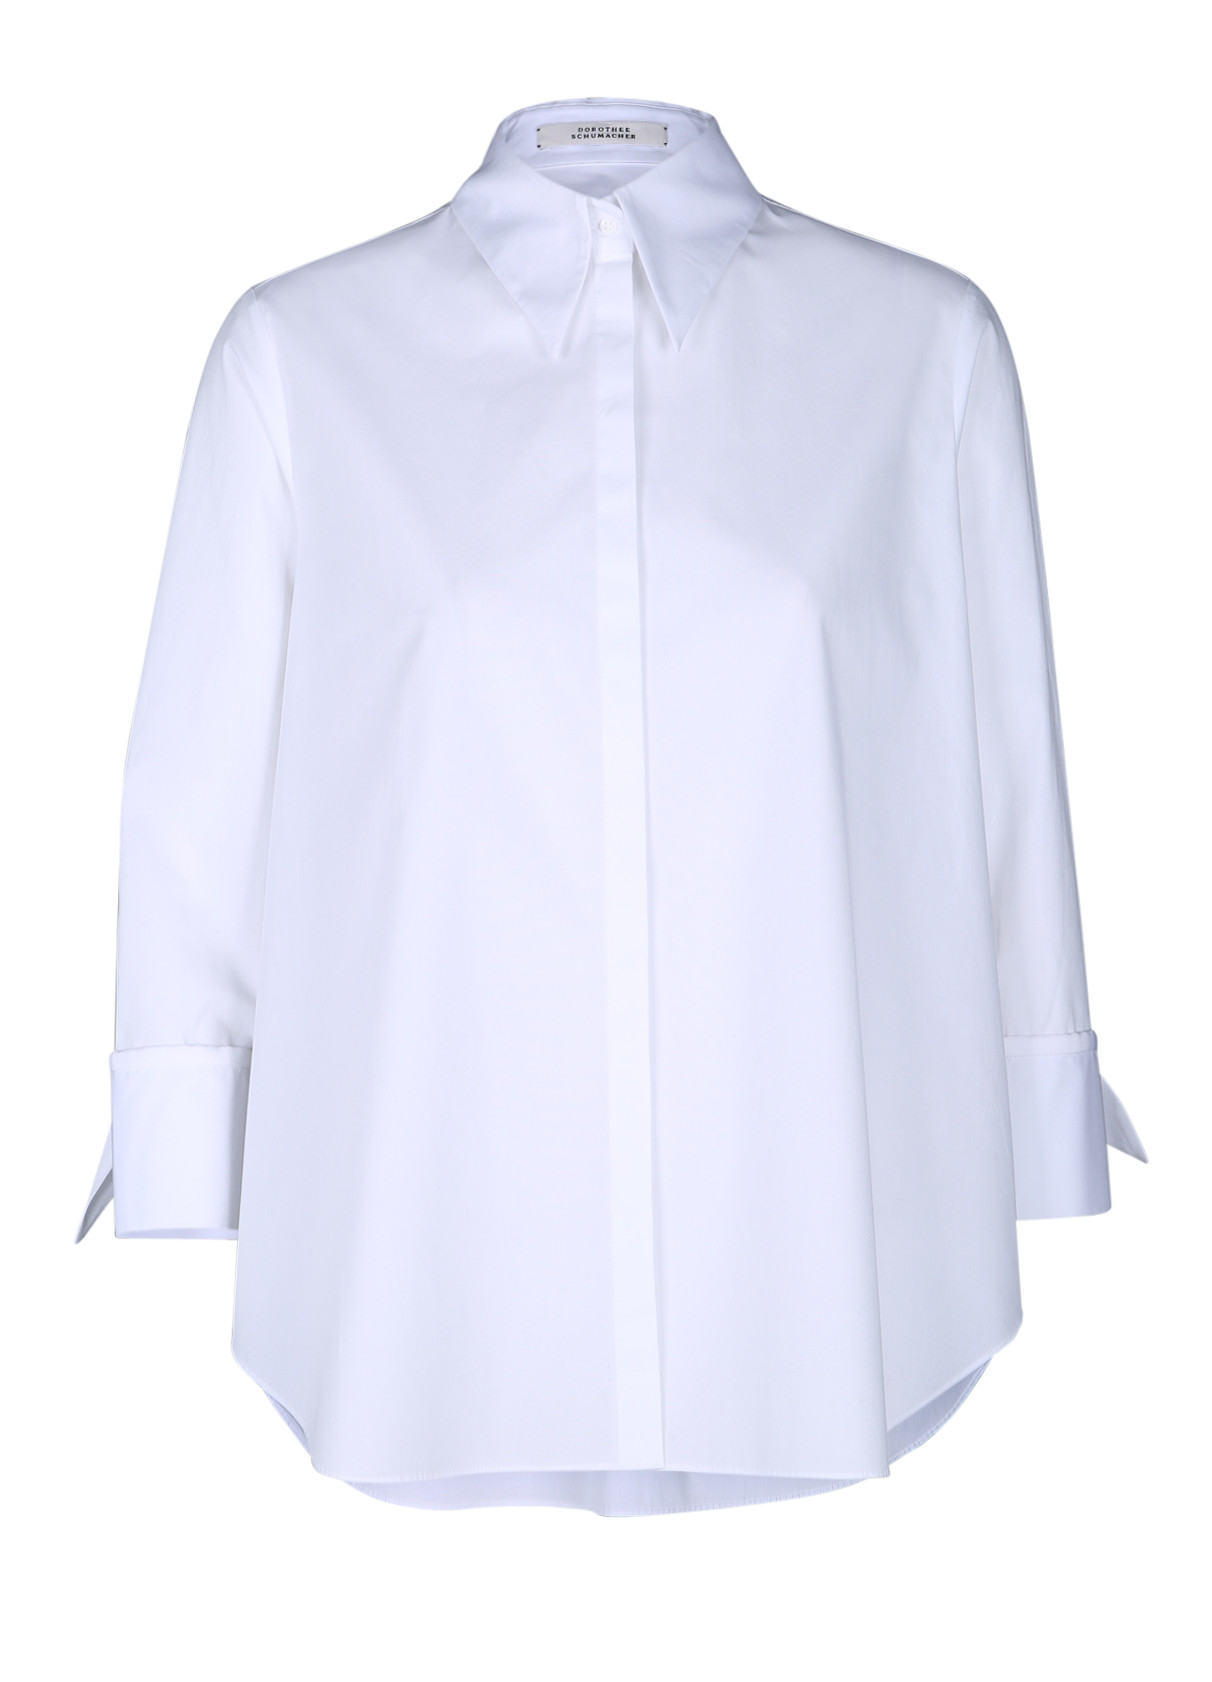 Dorothee schumacher Hybrid Flora Blouse 3/4 in White